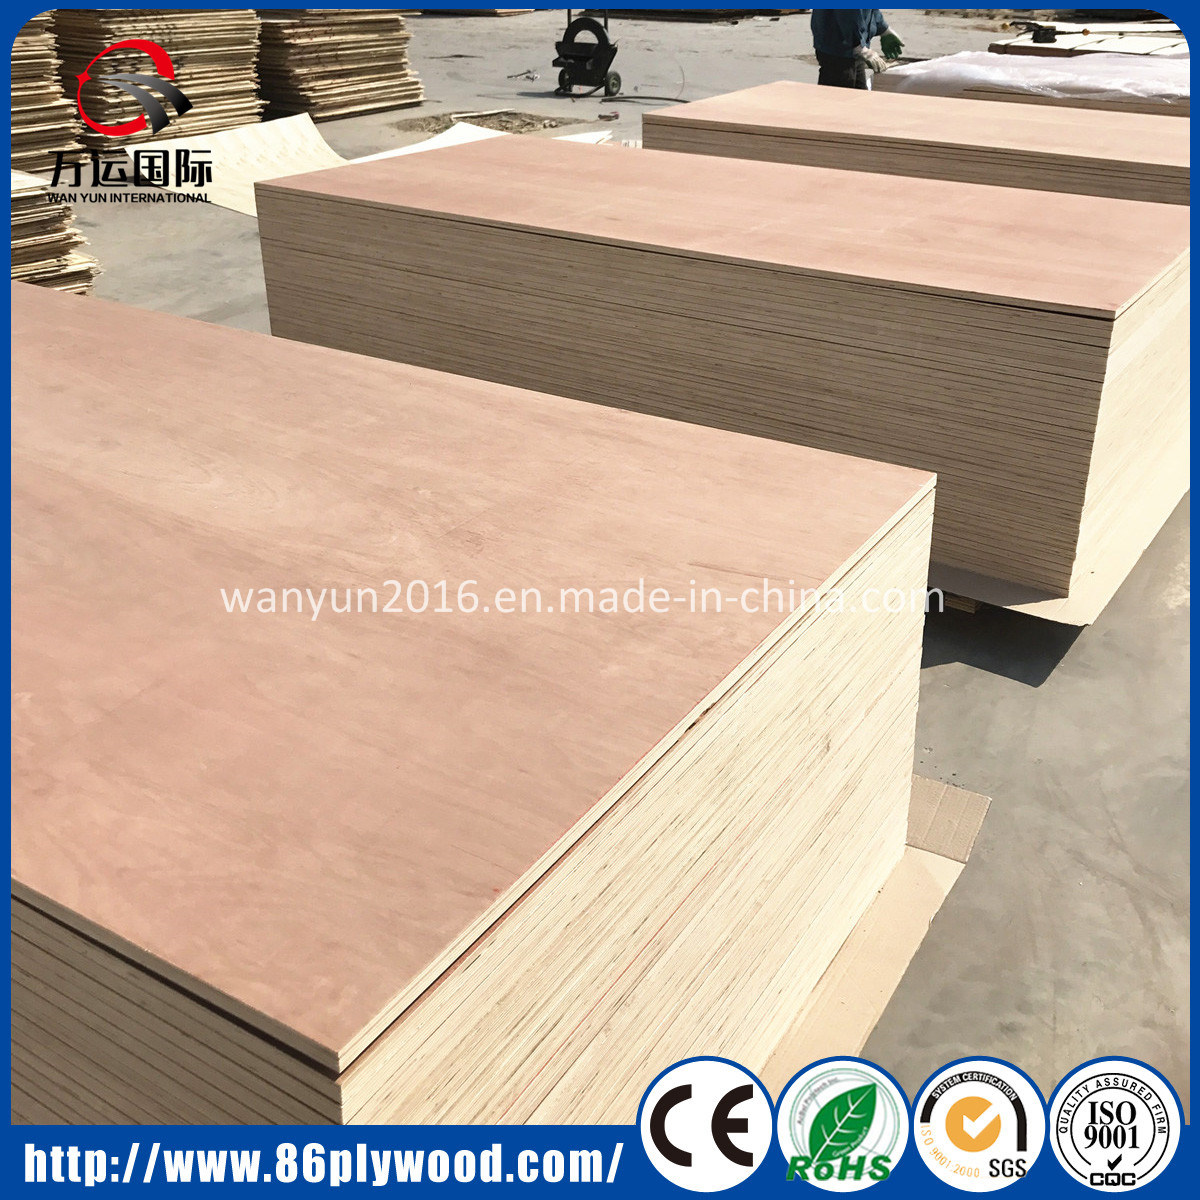 Waterproof Marine Plywood 3/4 Price Philippines